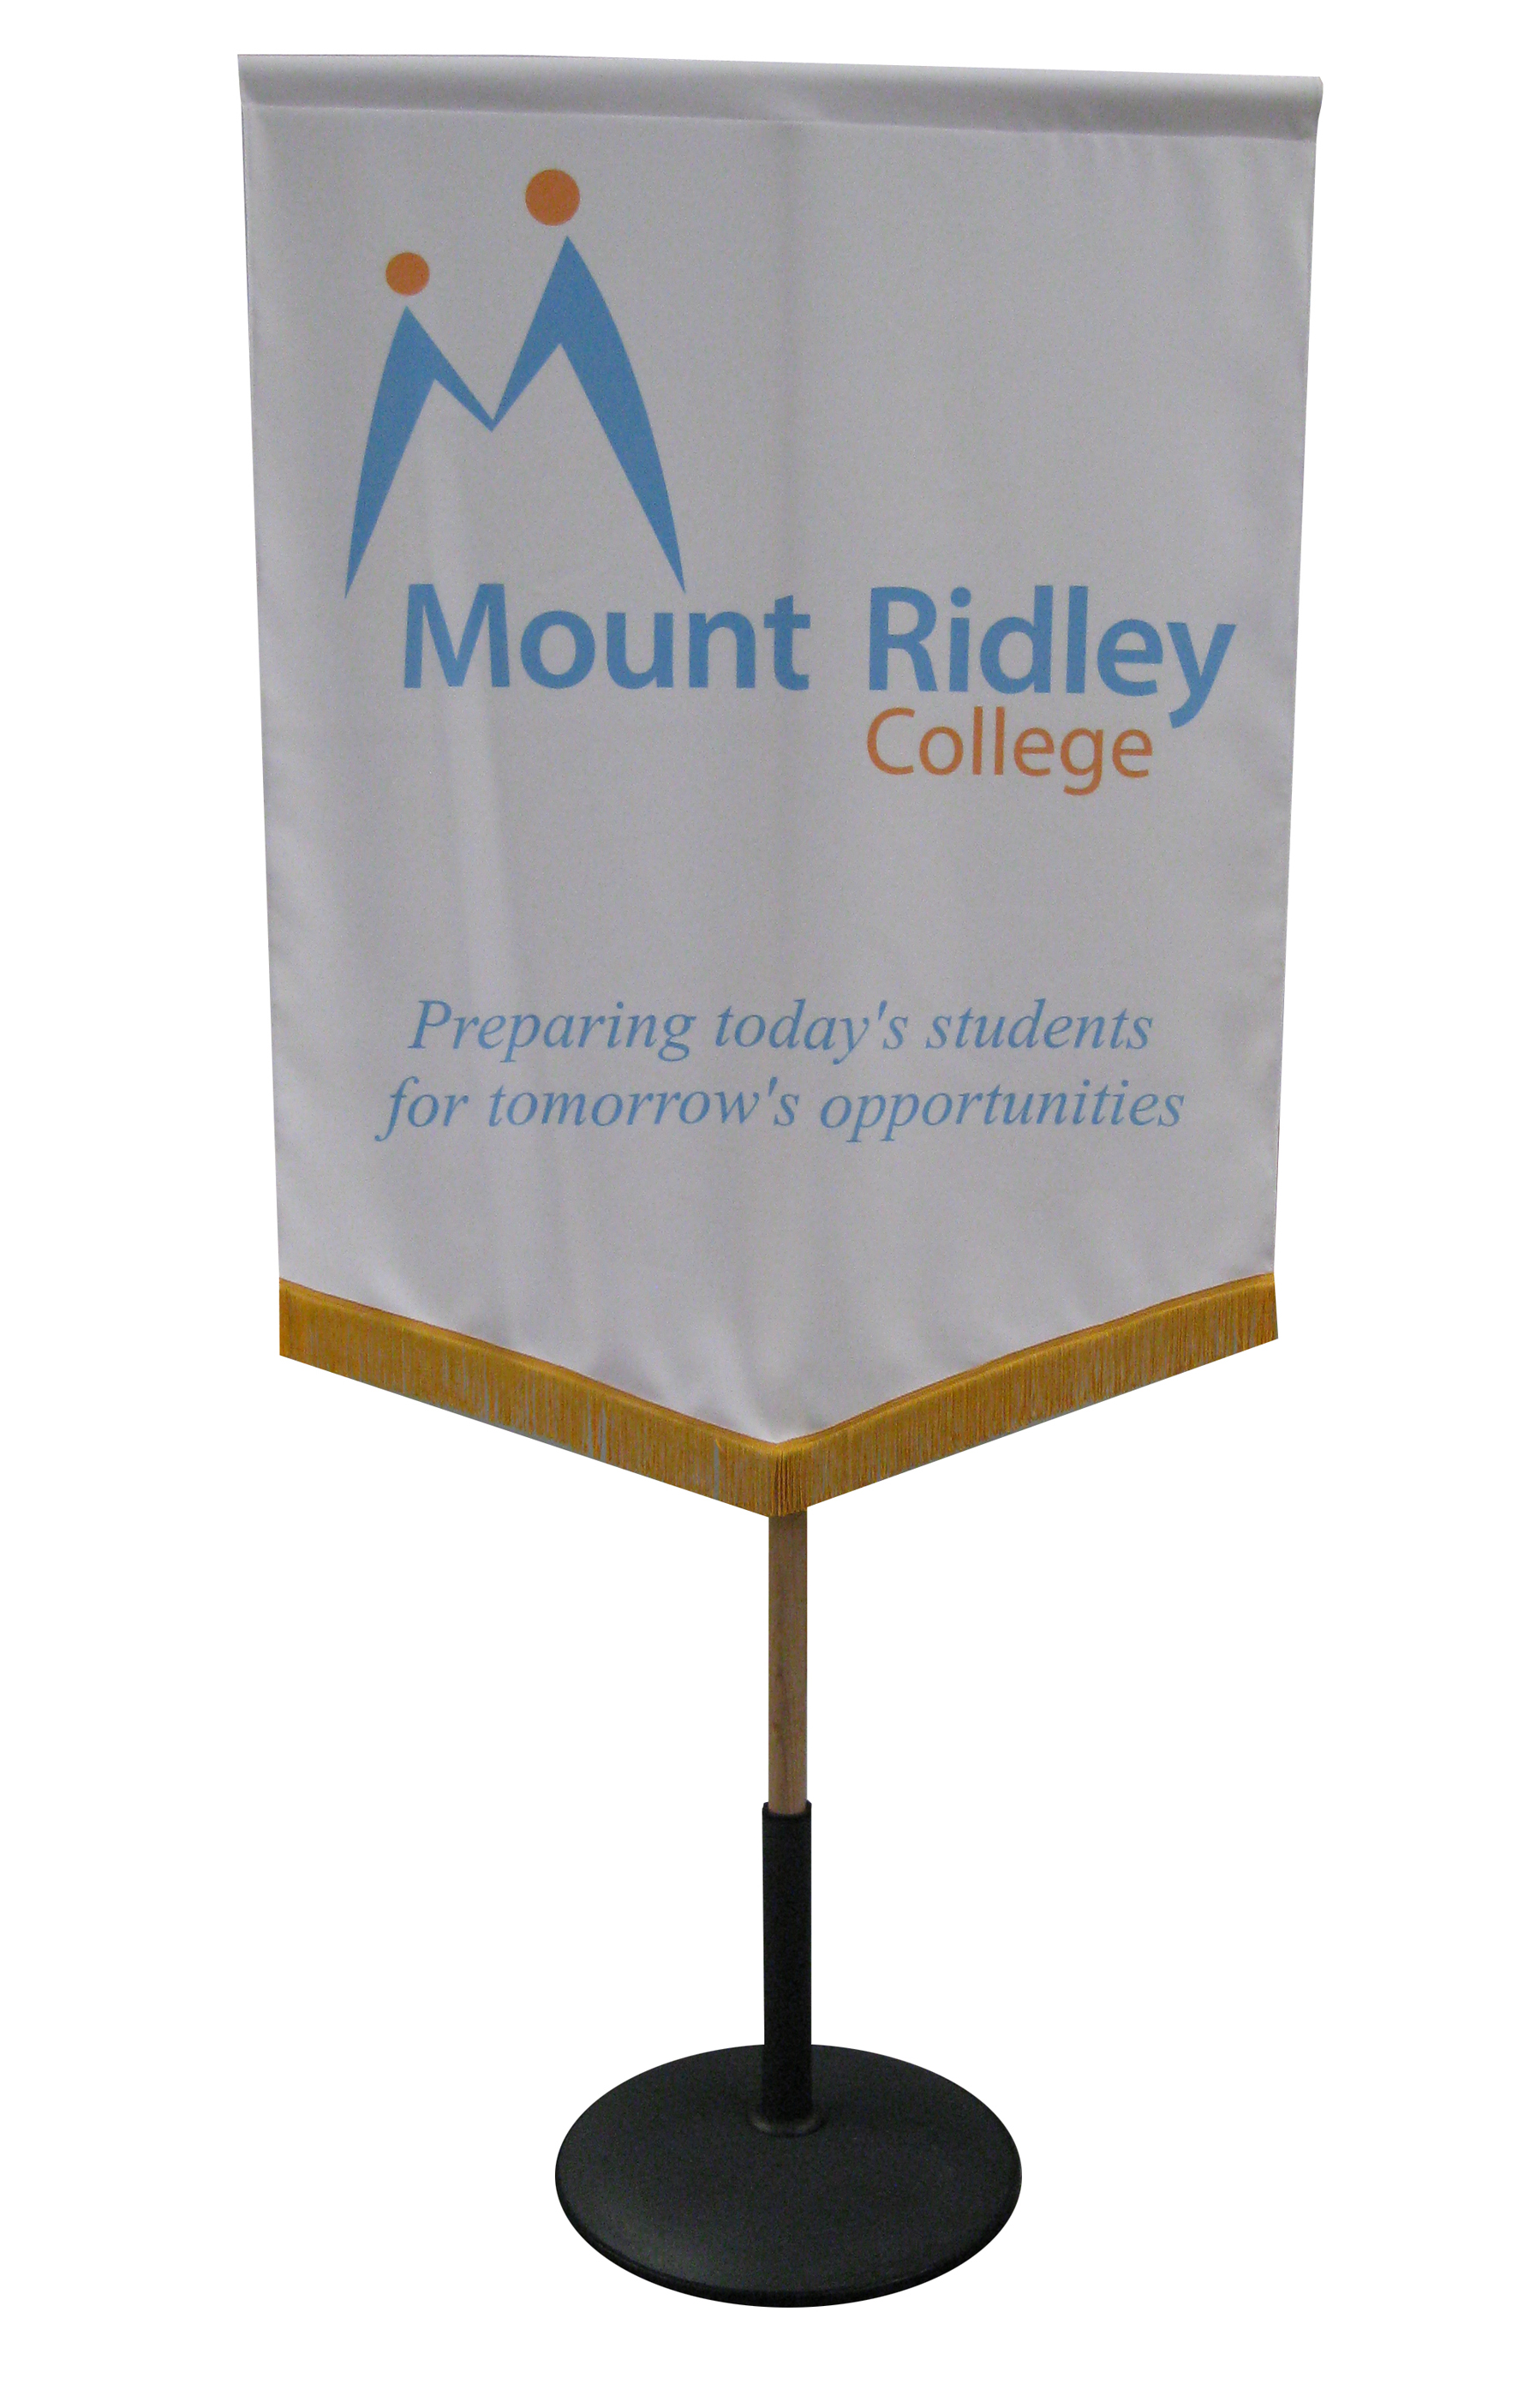 Processional & Formal School Banners • Marble Print Solutions